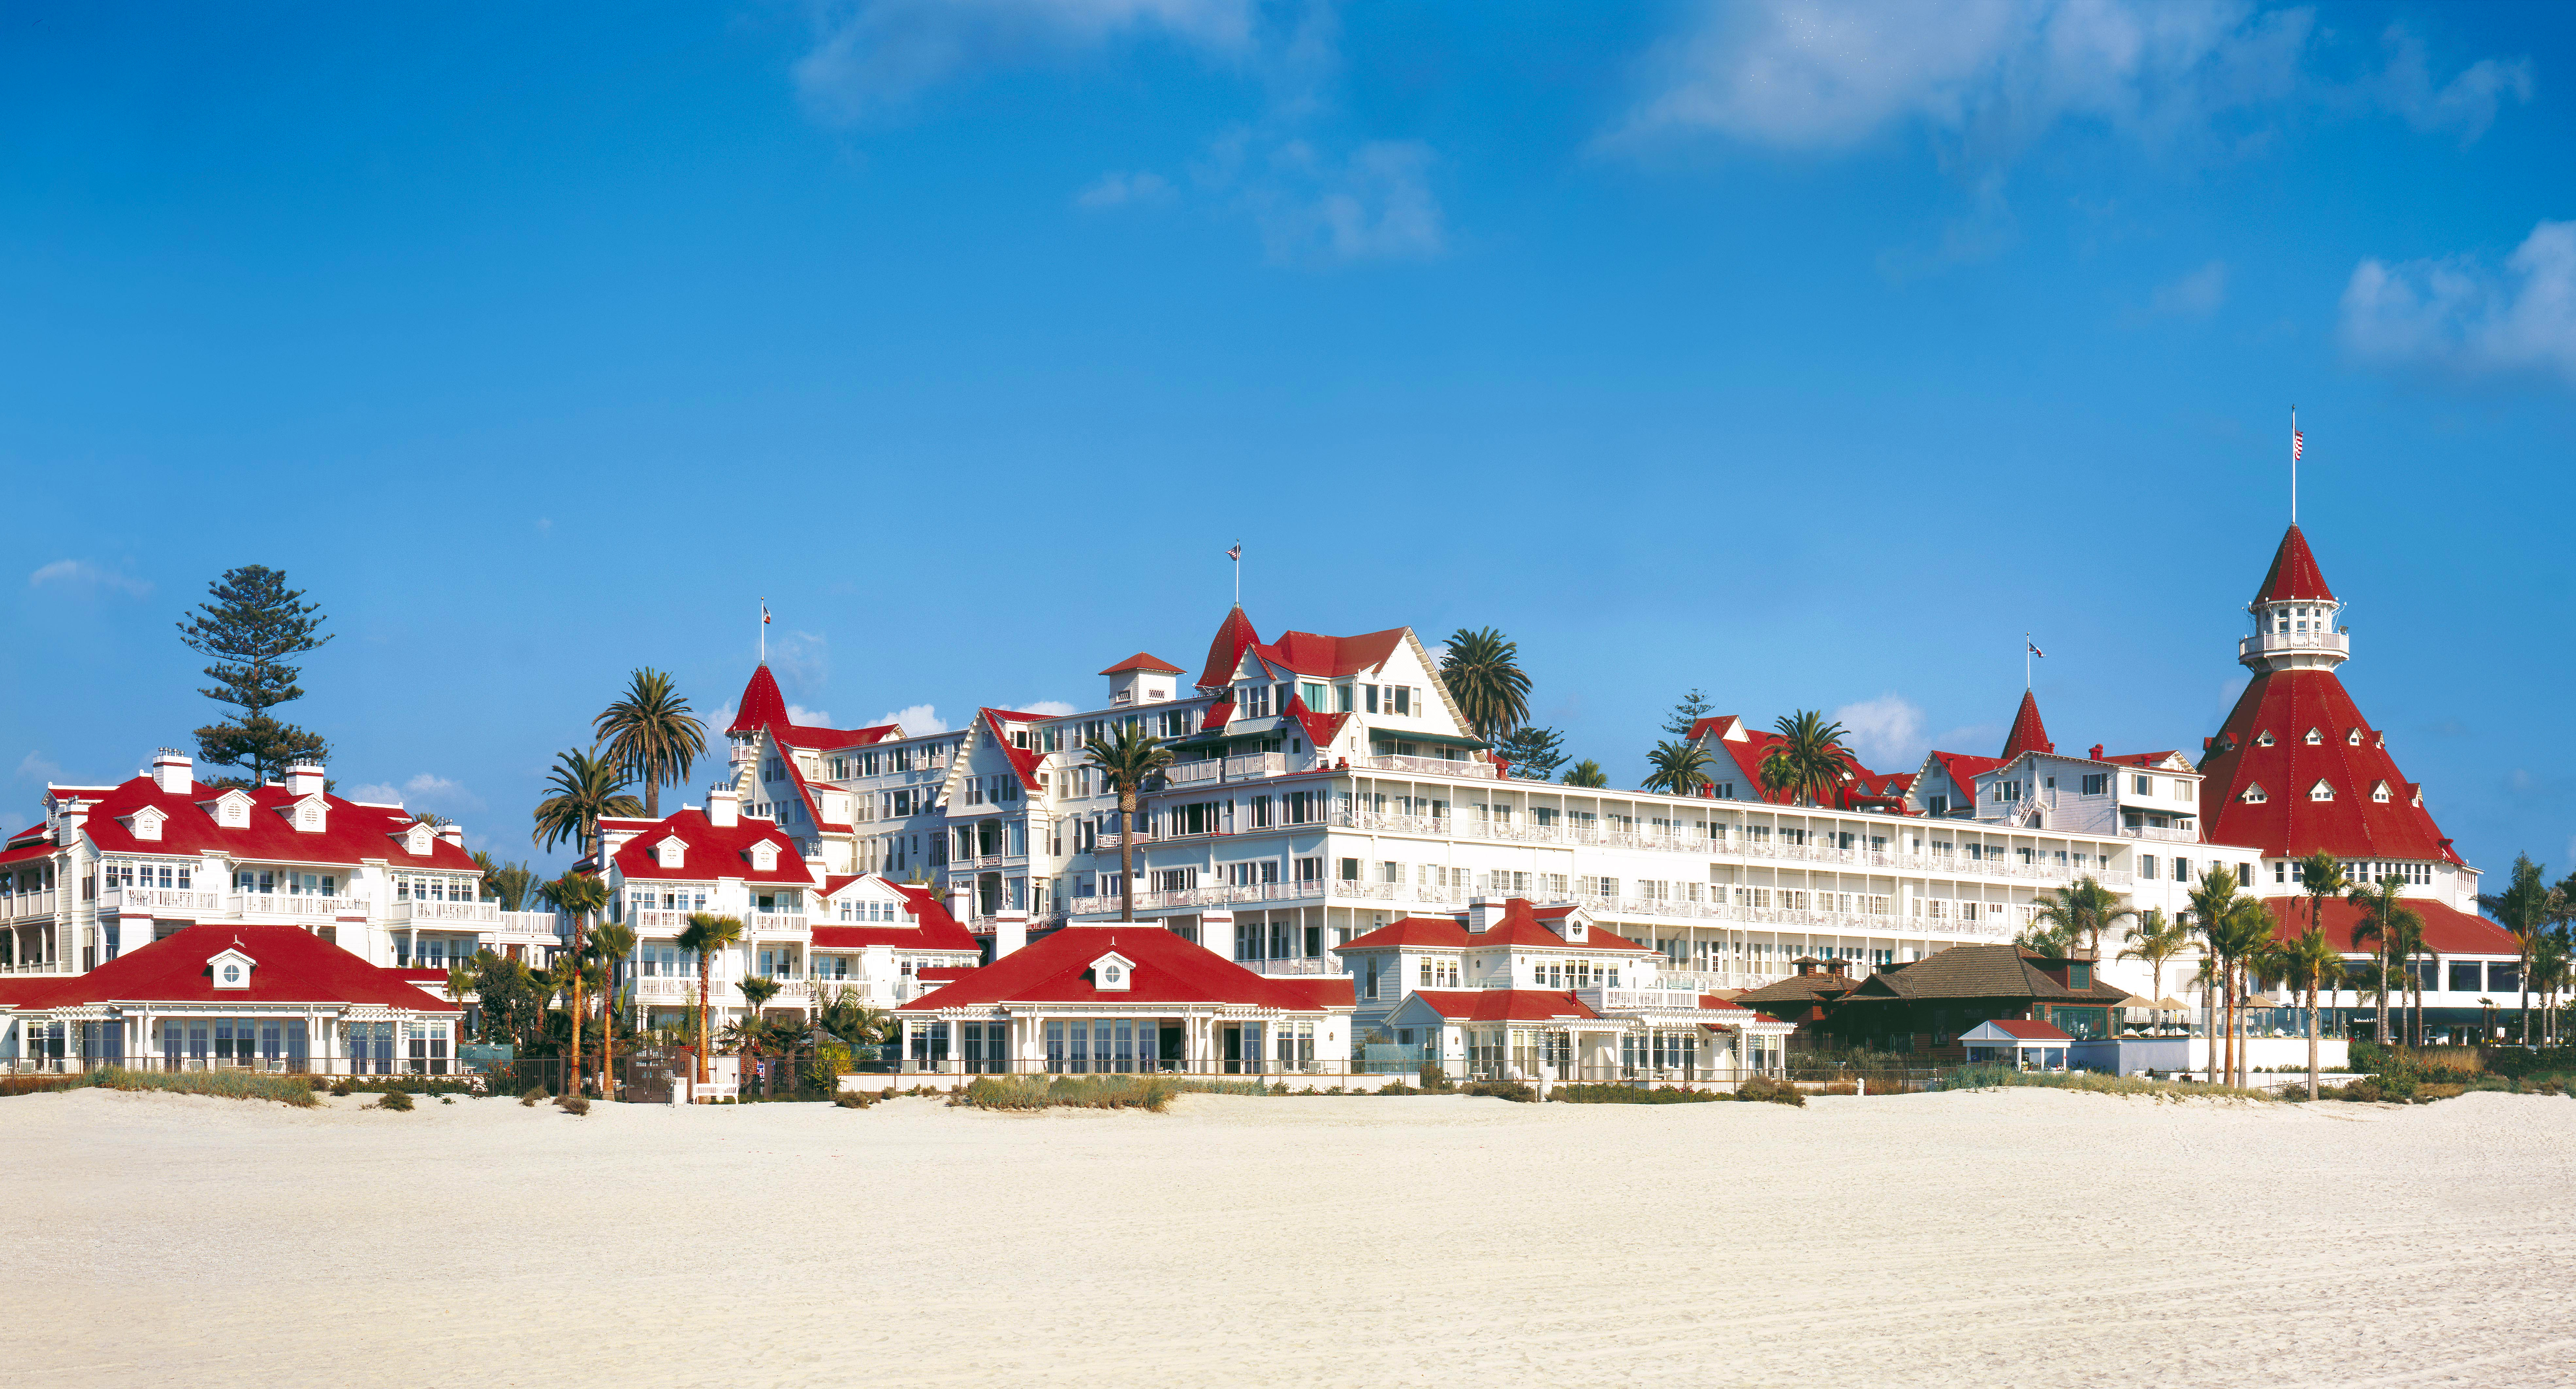 Hotel del Coronado, Curio Collection by Hilton (Photo: Business Wire)